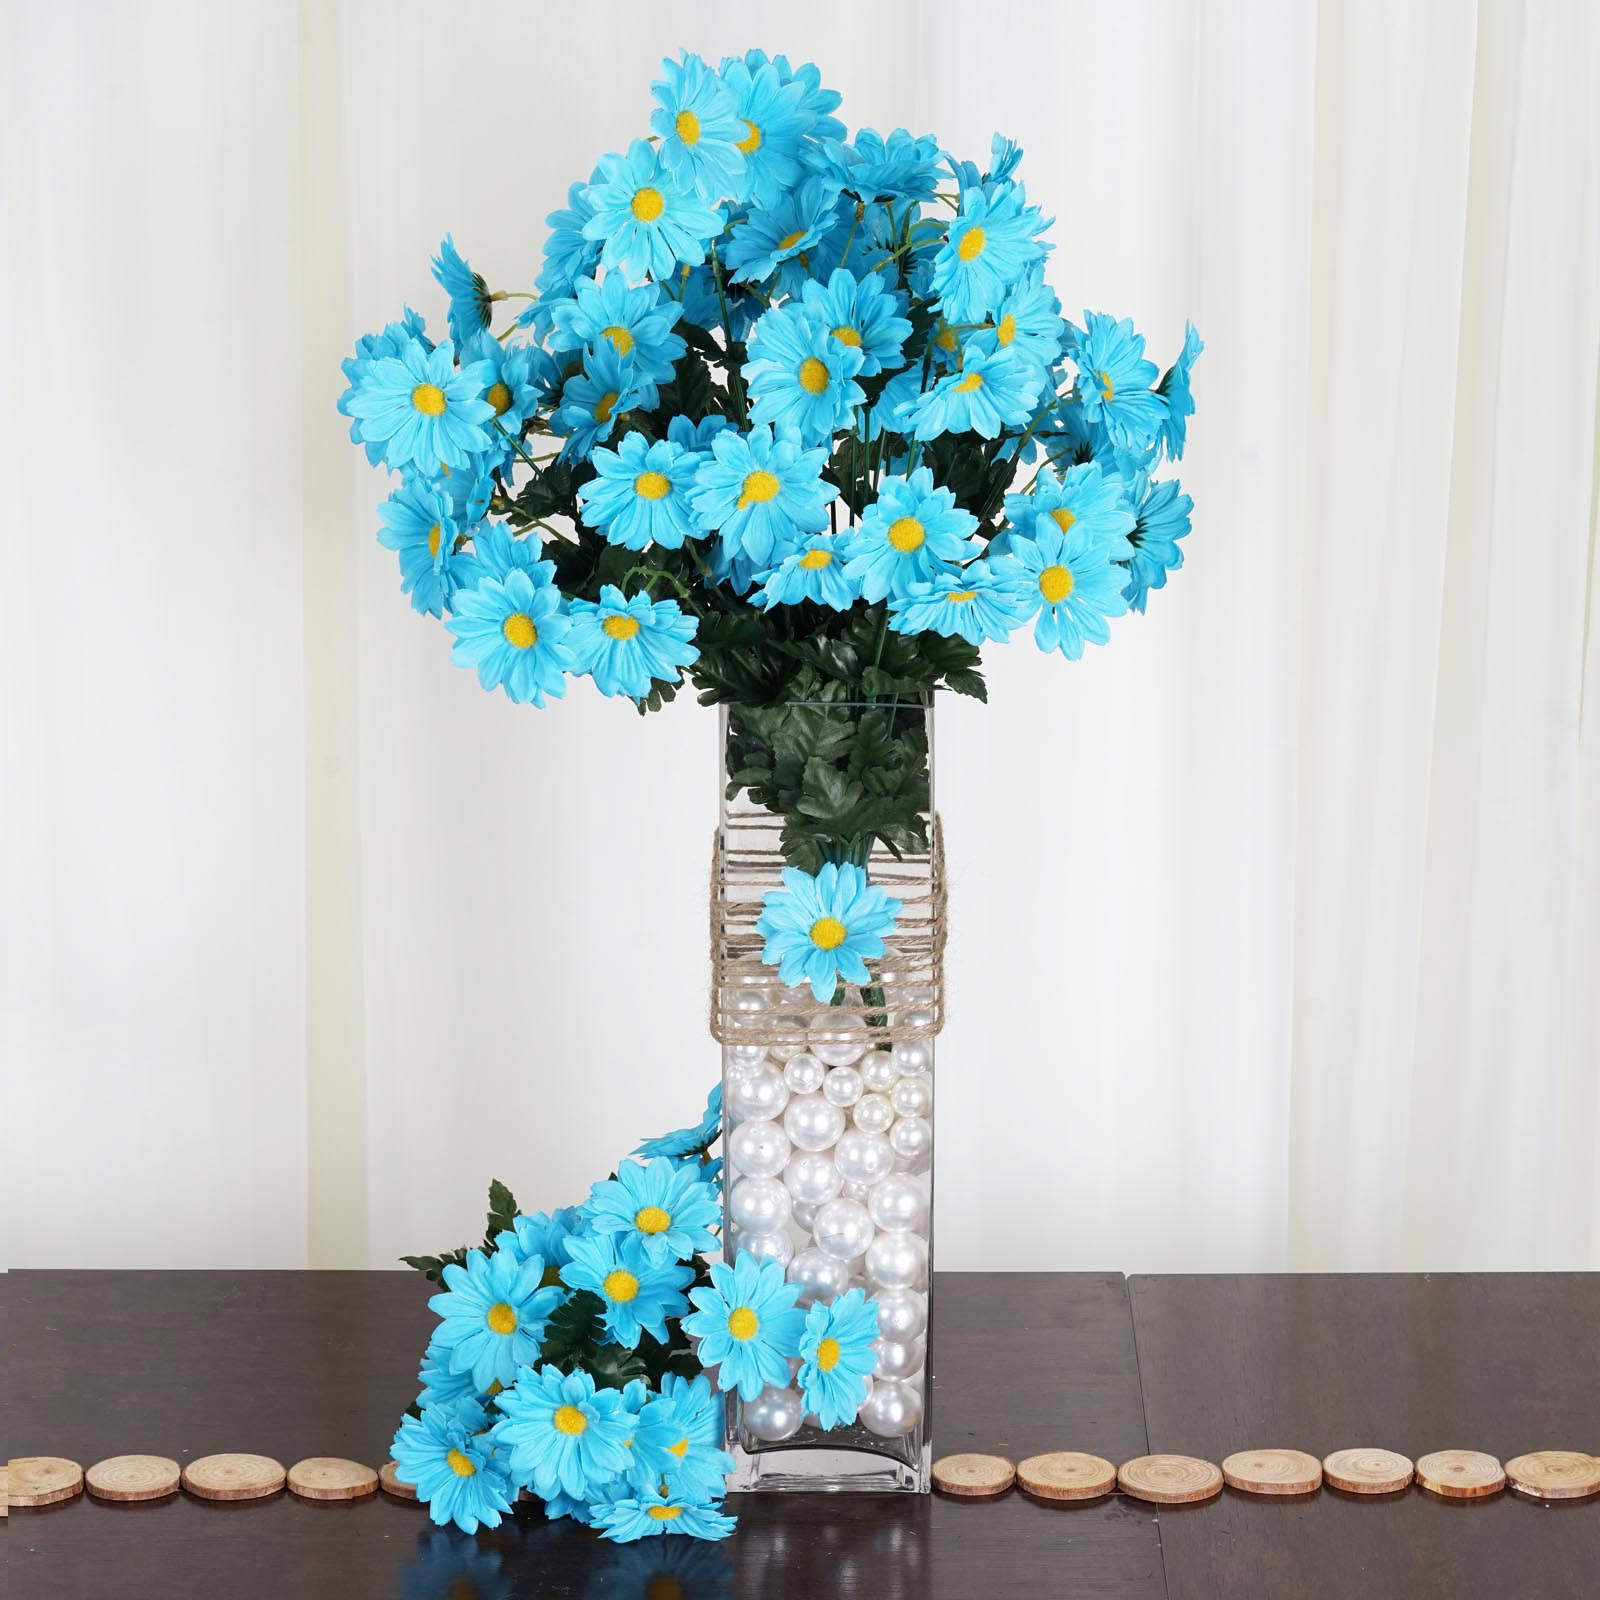 88 Silk DAISIES WEDDING Party Bouquets FLOWERS Artificial